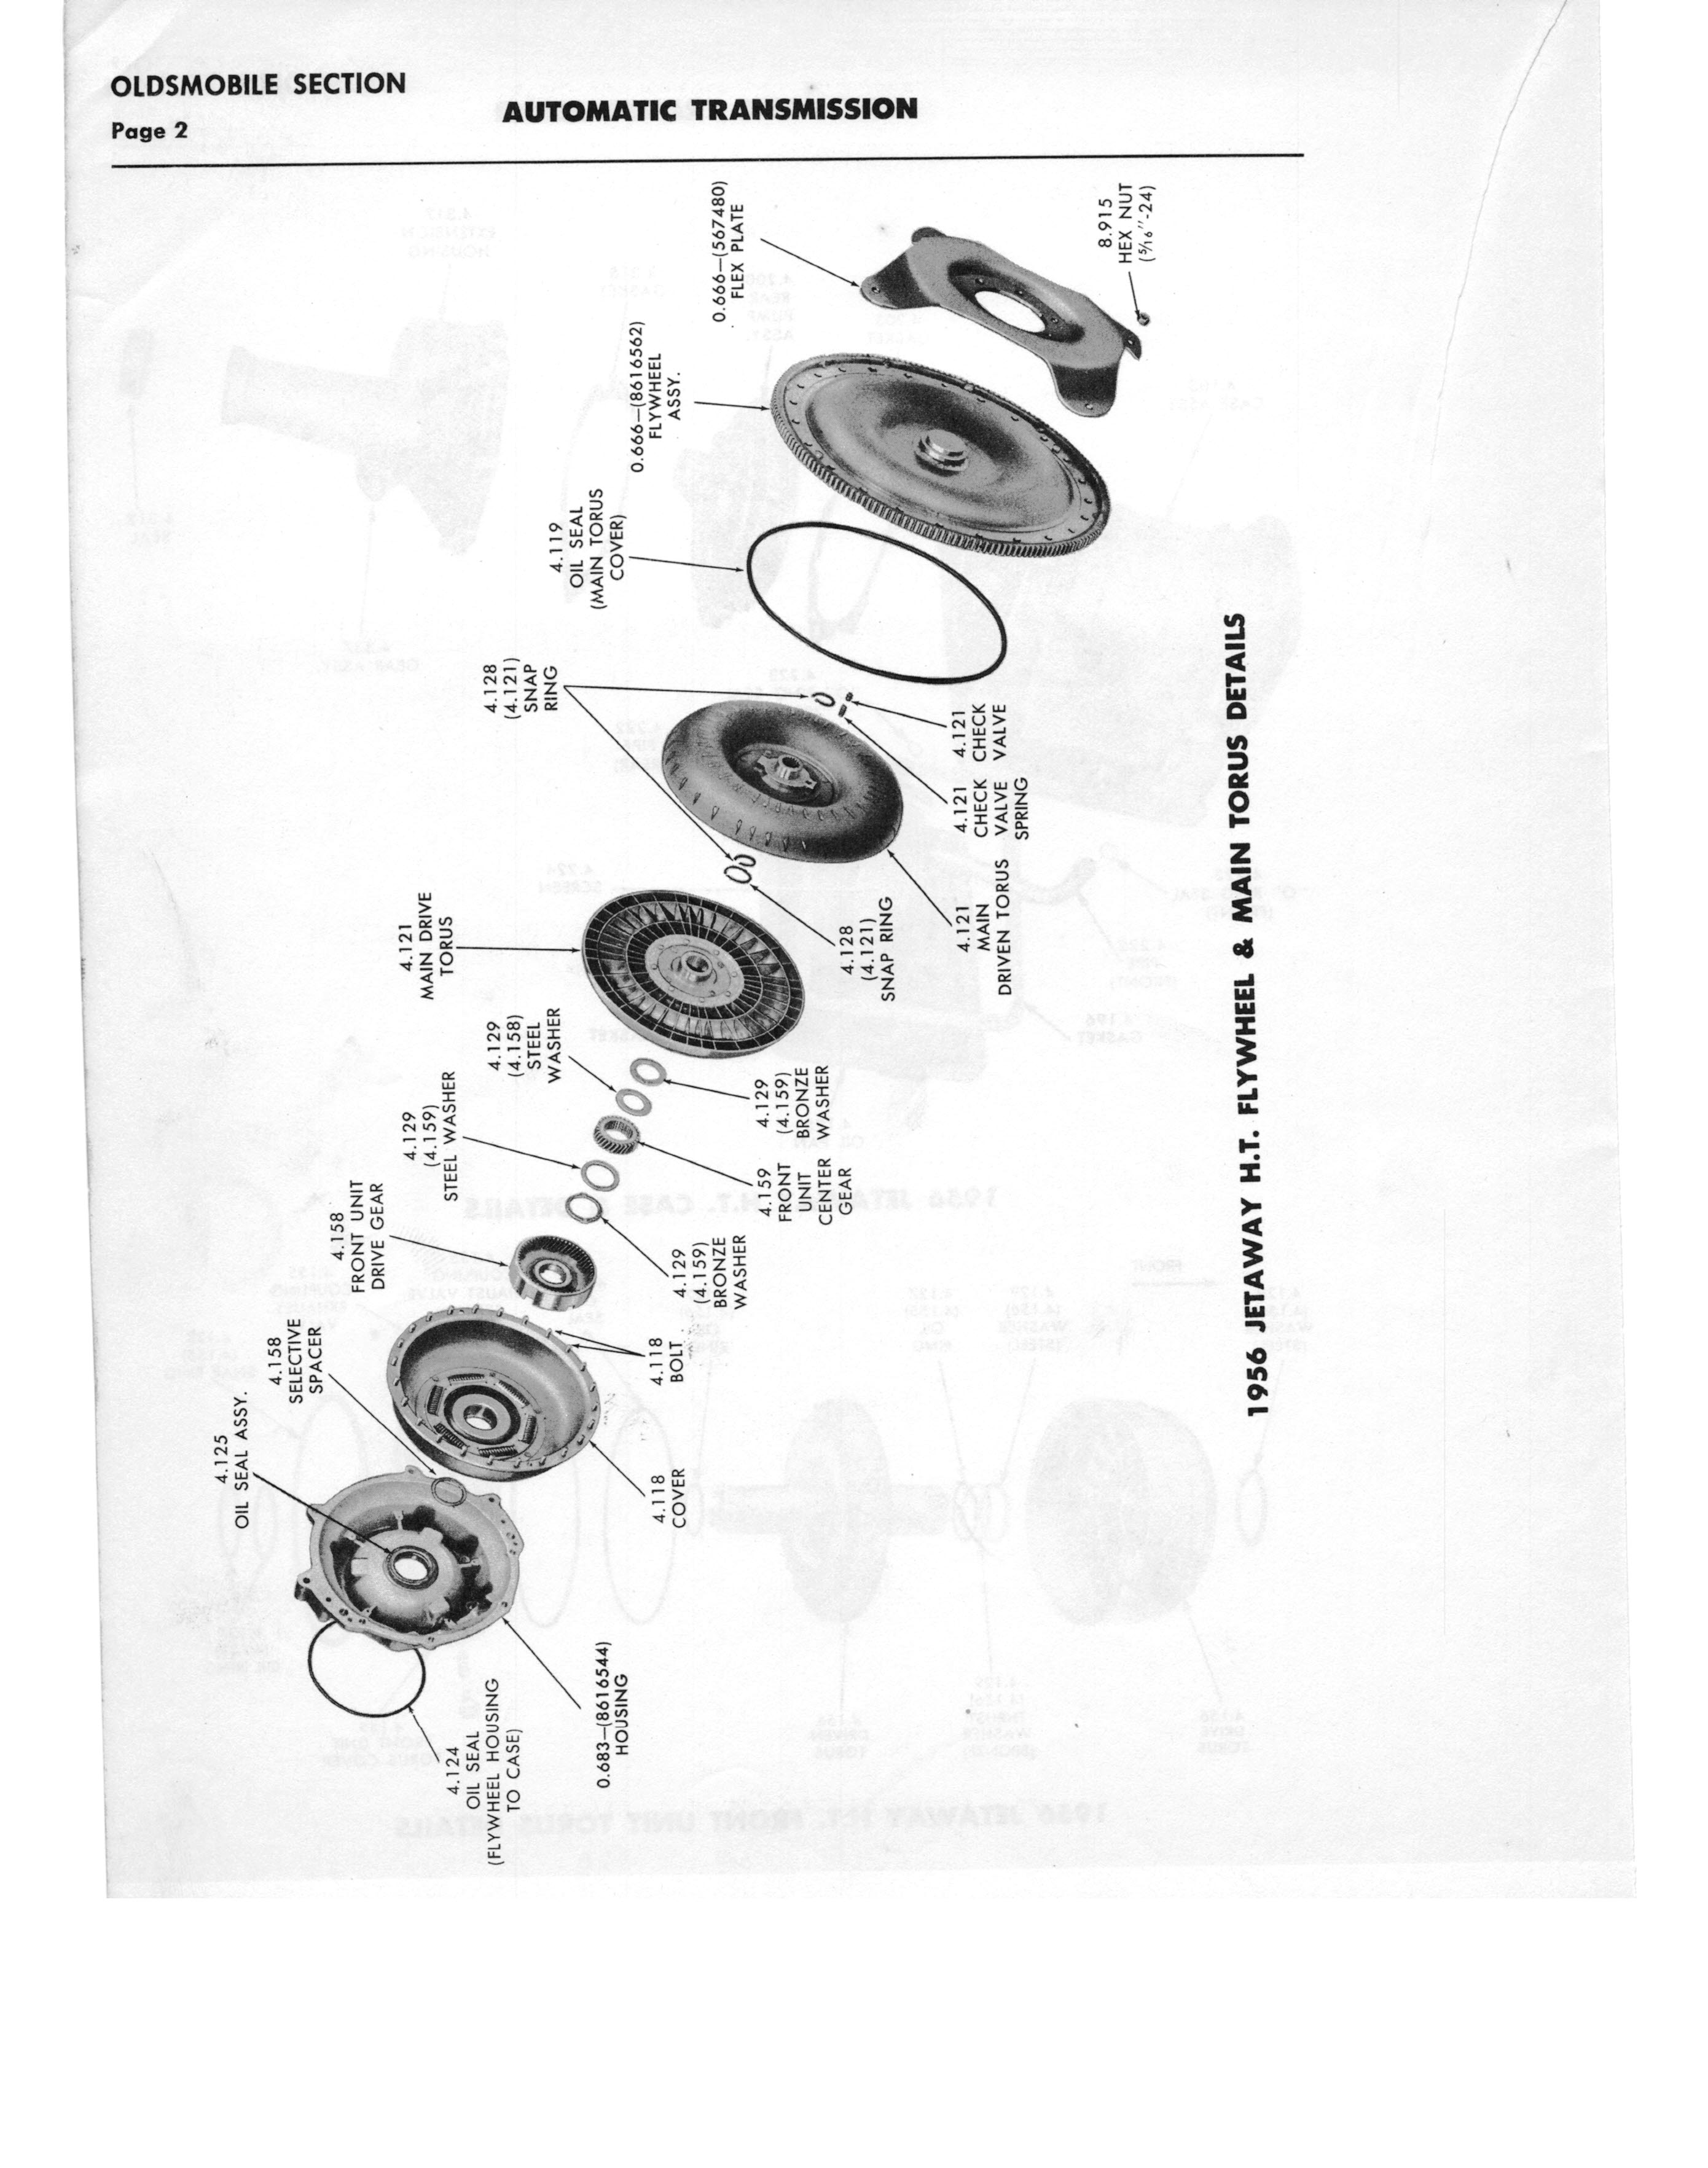 Gm Automatic Transmission Parts Catalog Supplement To A Page 32 Of 97